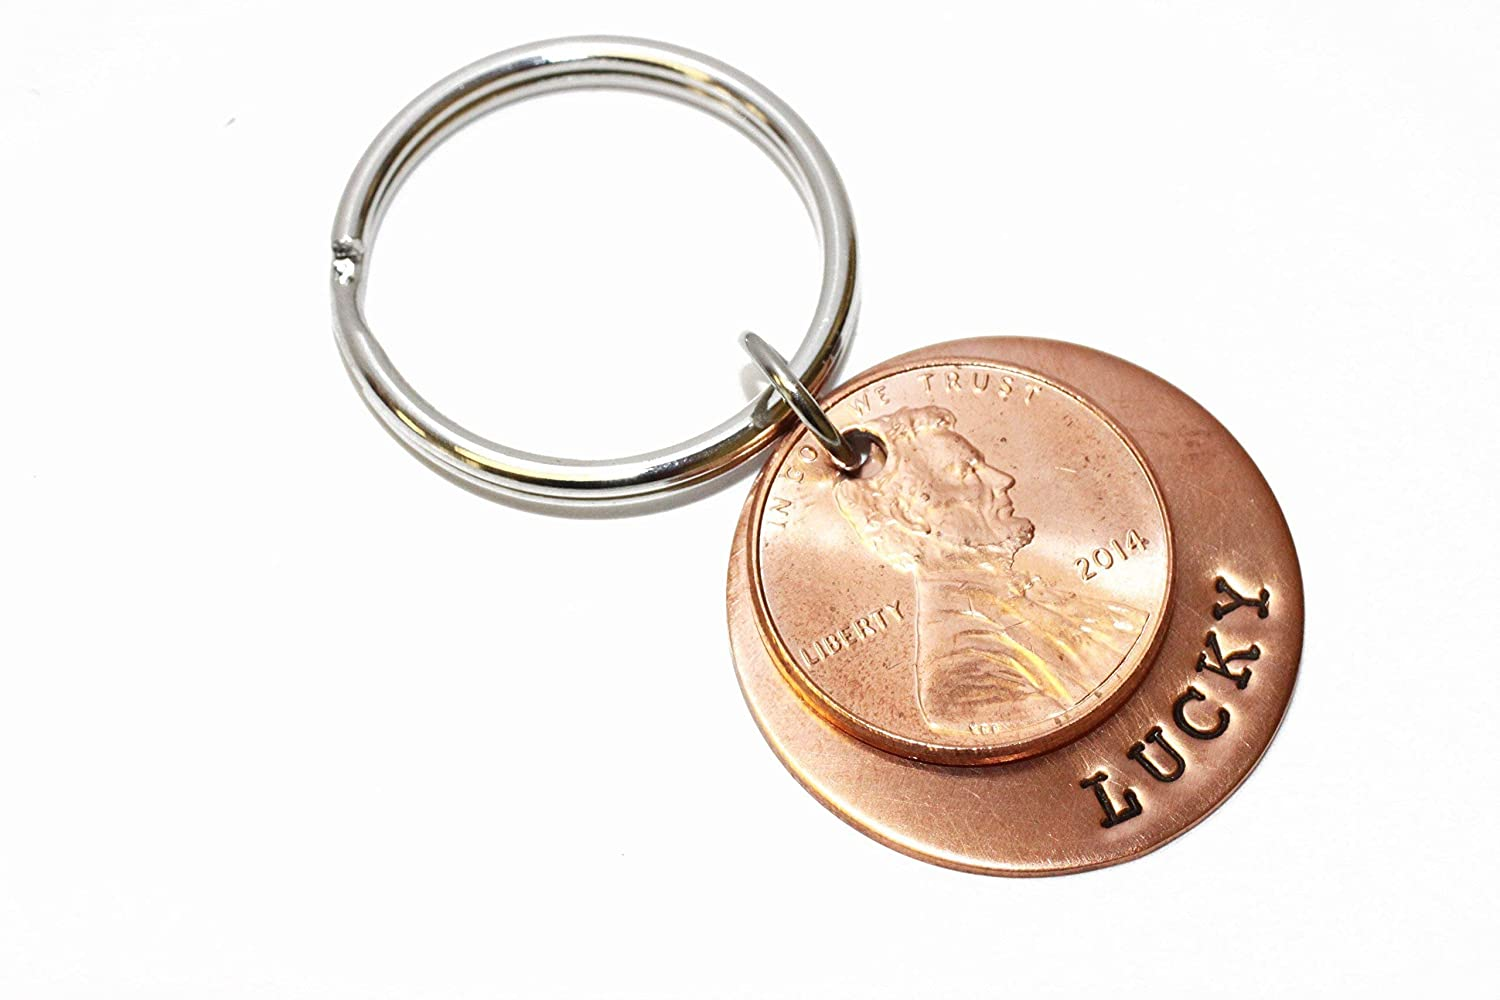 Lucky us penny keychain 2 pennies custom hand stamped copper anniversary gift Husband Gift Boyfriend Gift